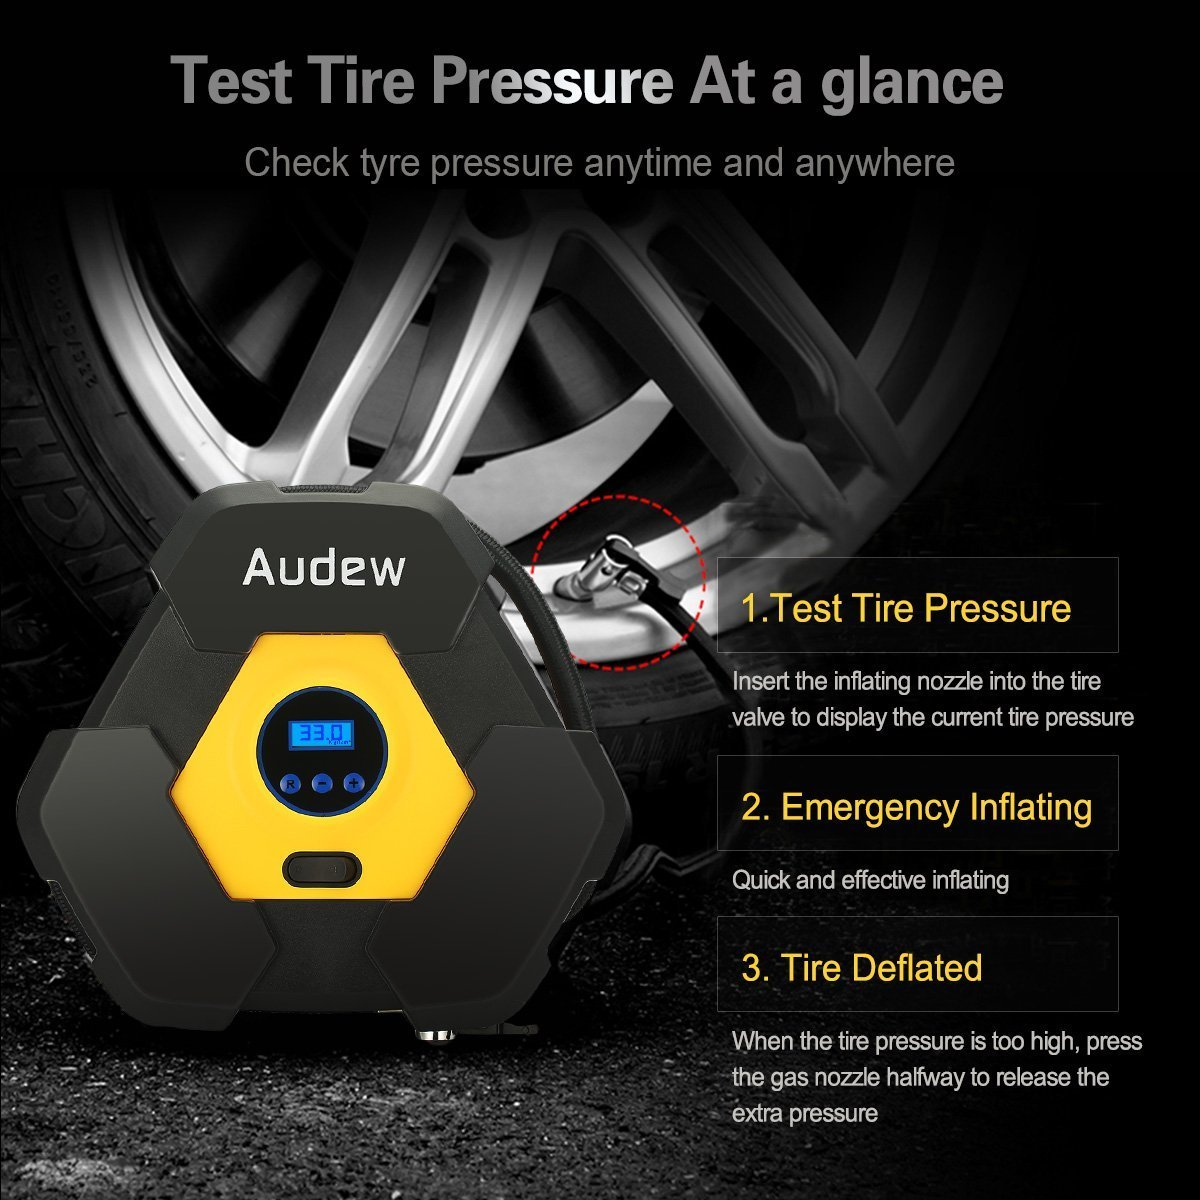 4. AUDEW Portable Mini Air Compressor Pump -  Best Mini Air Compressor